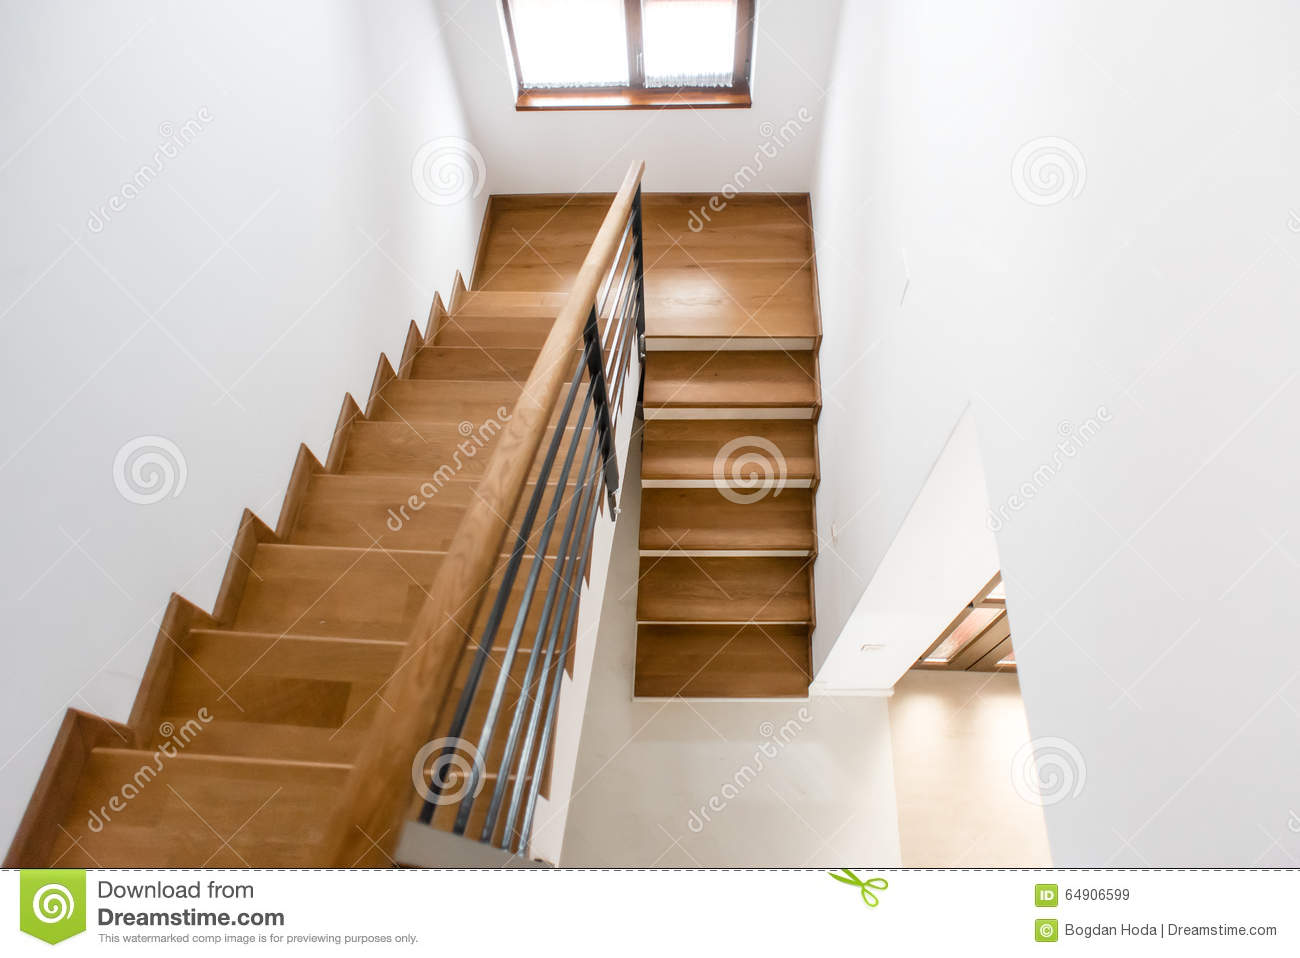 Interior Design Wooden Minimalist Staircase In Luxury Home Modern Architectural Loft With